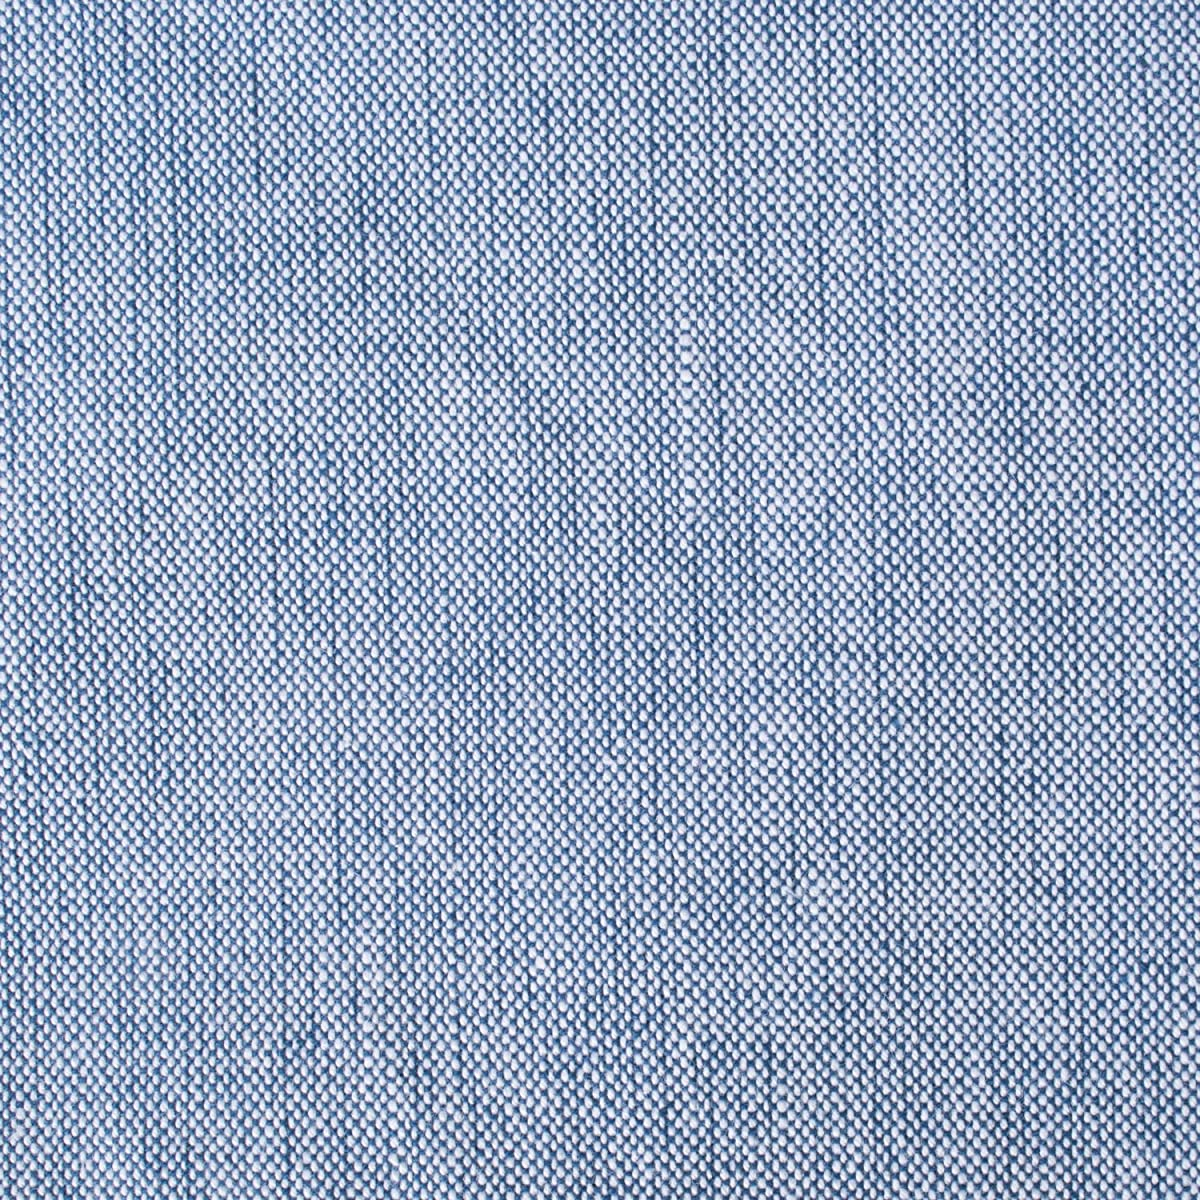 "DII Cotton Chambray Pastel Tablecloth for Spring & Summer with a Denim Woven Look, Use for Family Meals or Gatherings, Weddings, Brunch, Catering Events, or Parties (70"" Round, Seats 4-6 People), Blue"